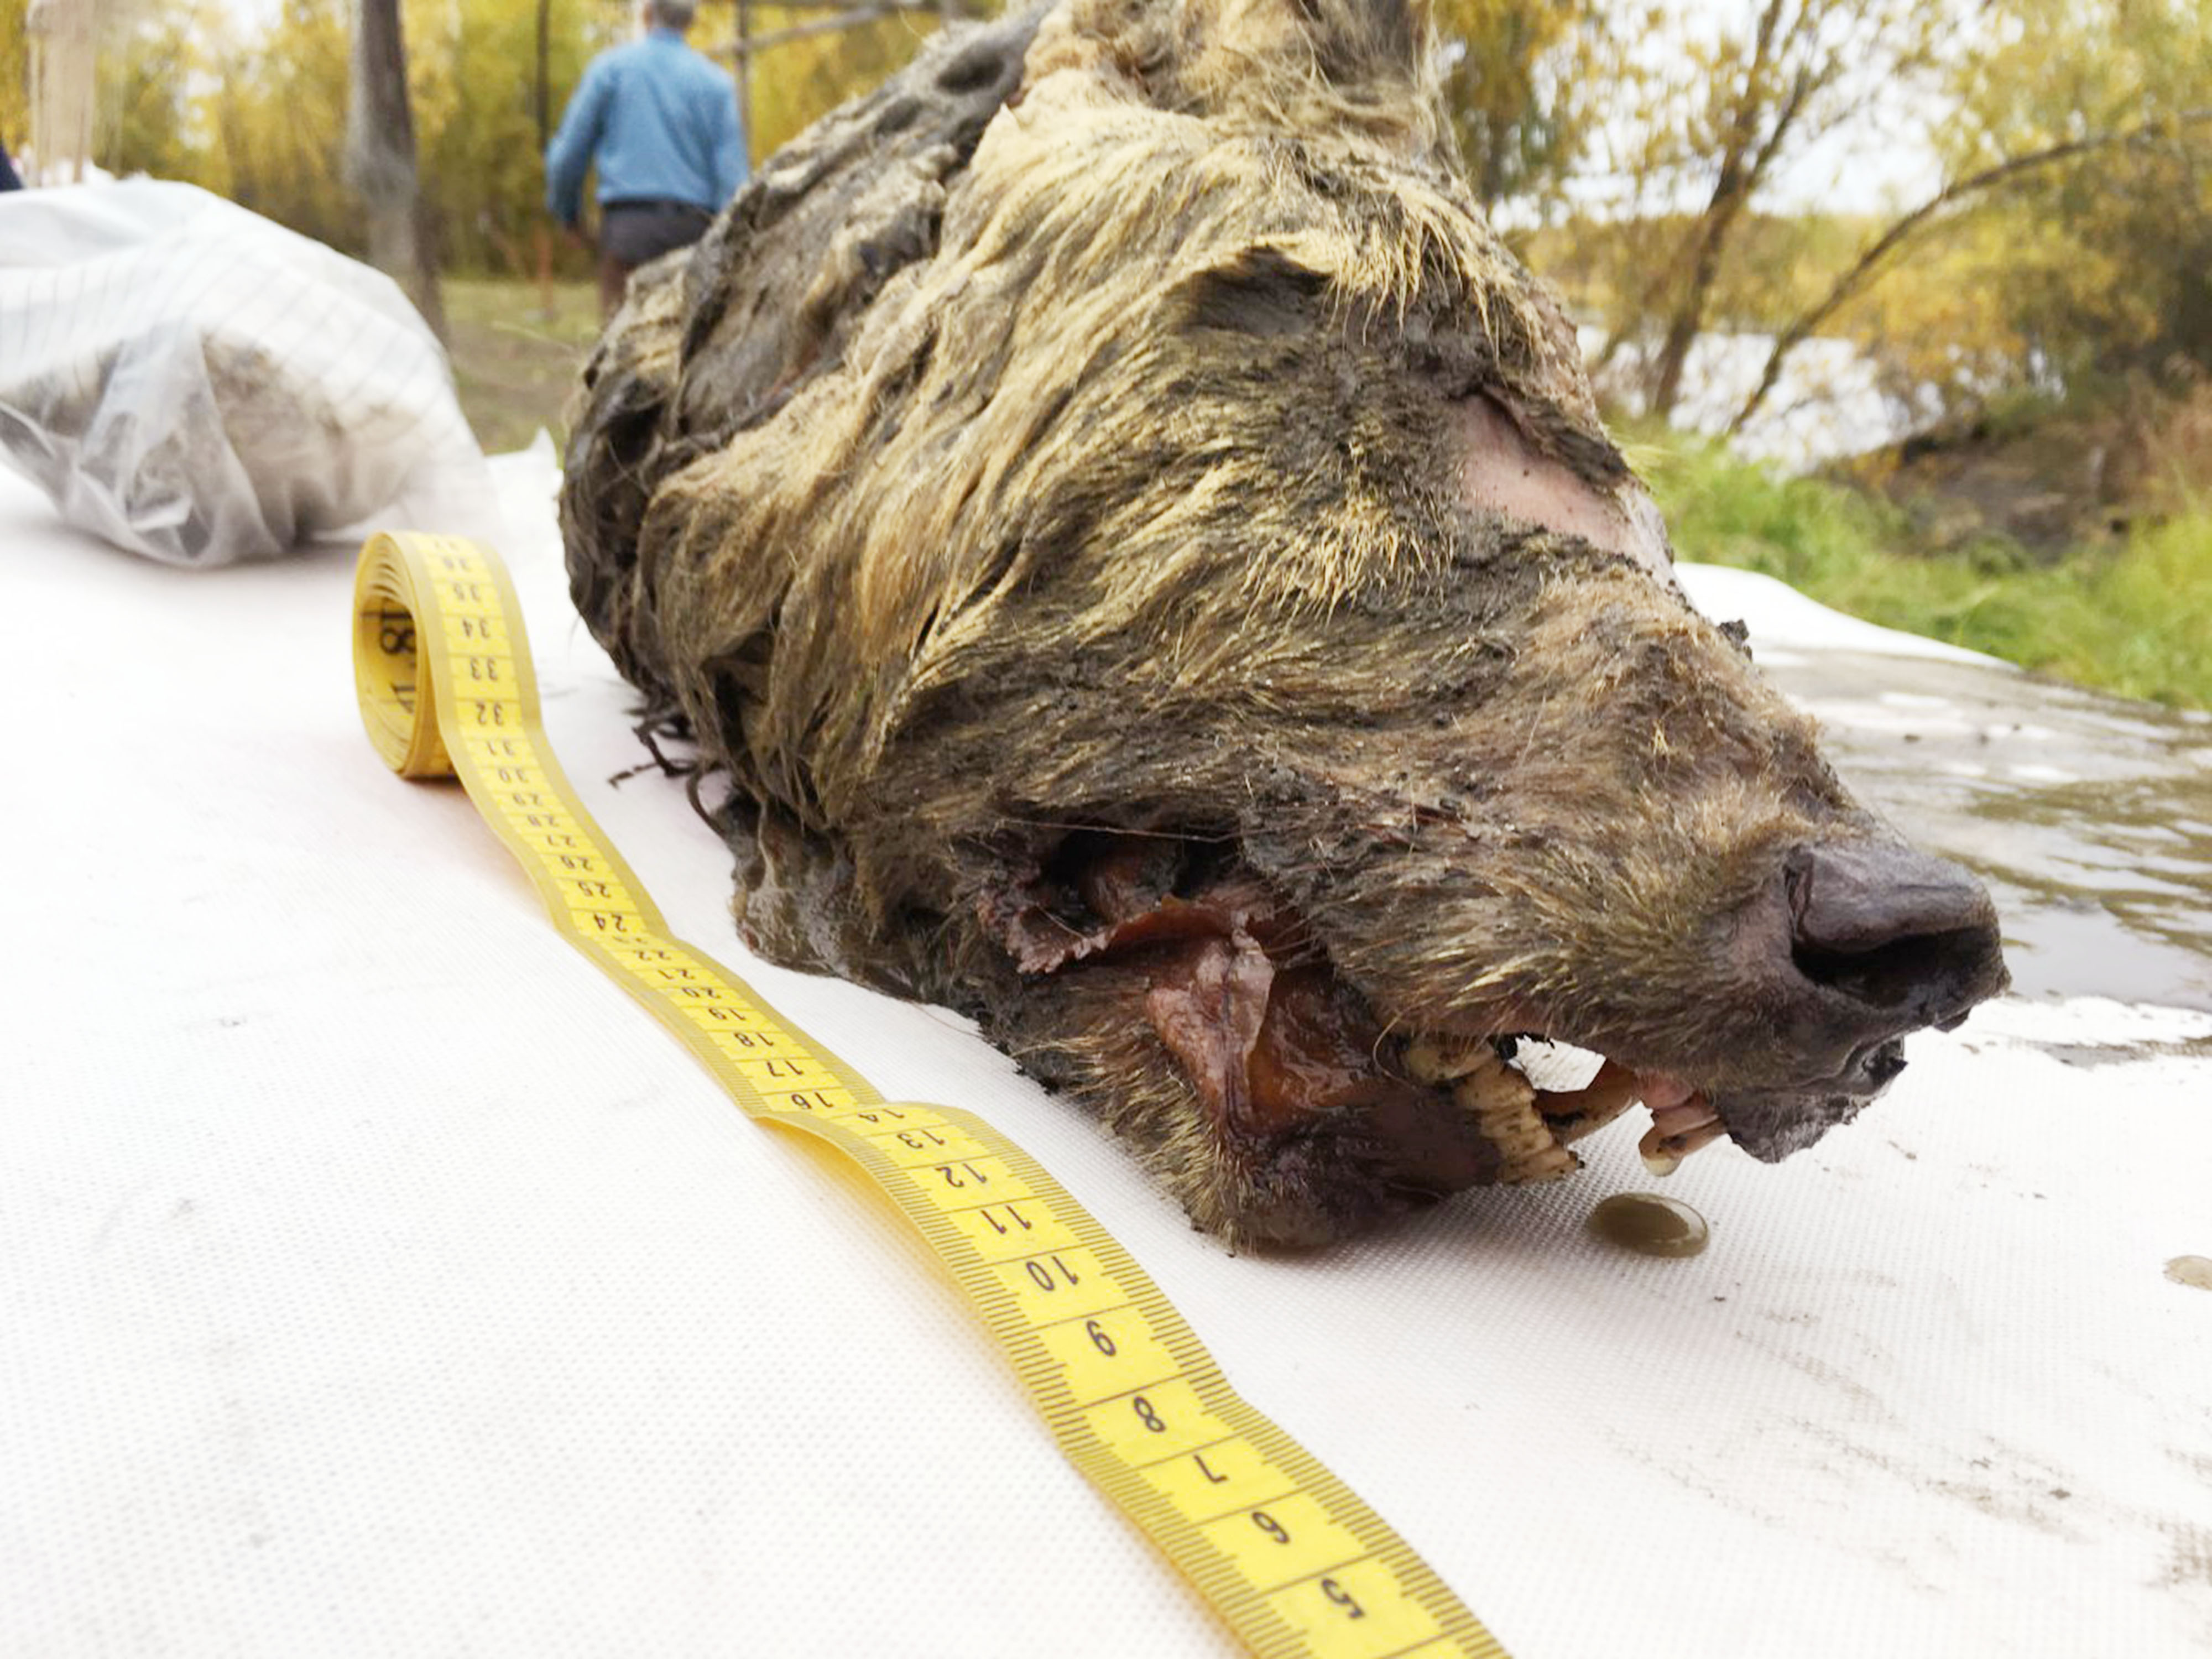 The 40,000-year-old creature was discovered in the Siberian permafrost. Credit: The Siberian Times